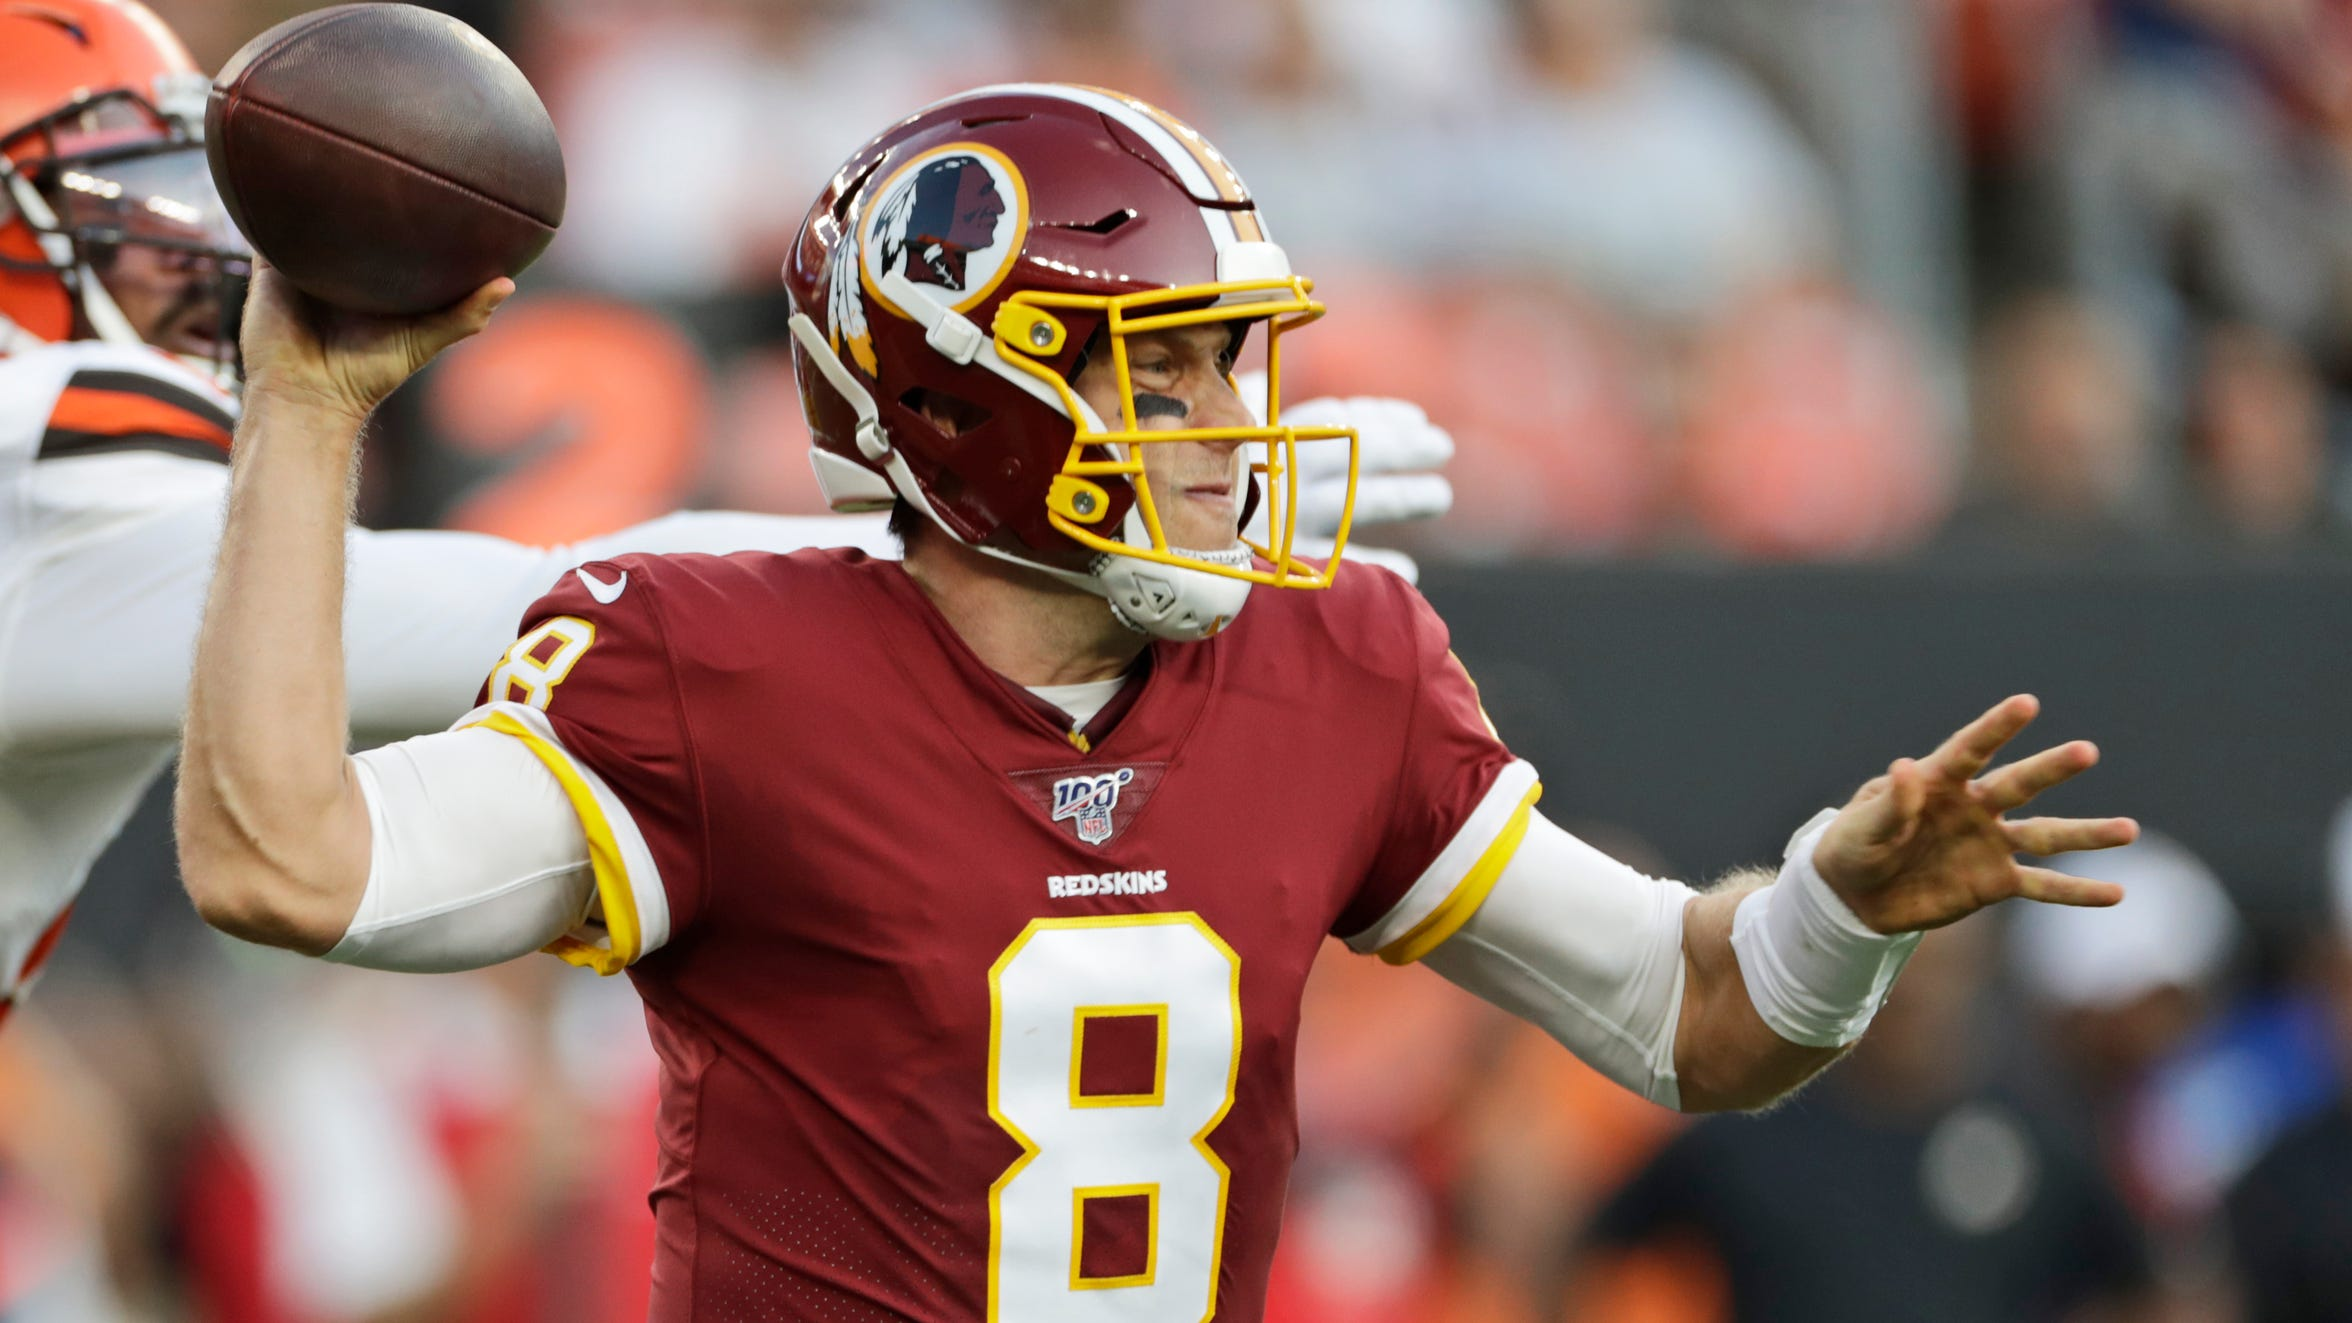 Washington Redskins quarterback Case Keenum looks downfield in preseason game against the Cleveland Browns.